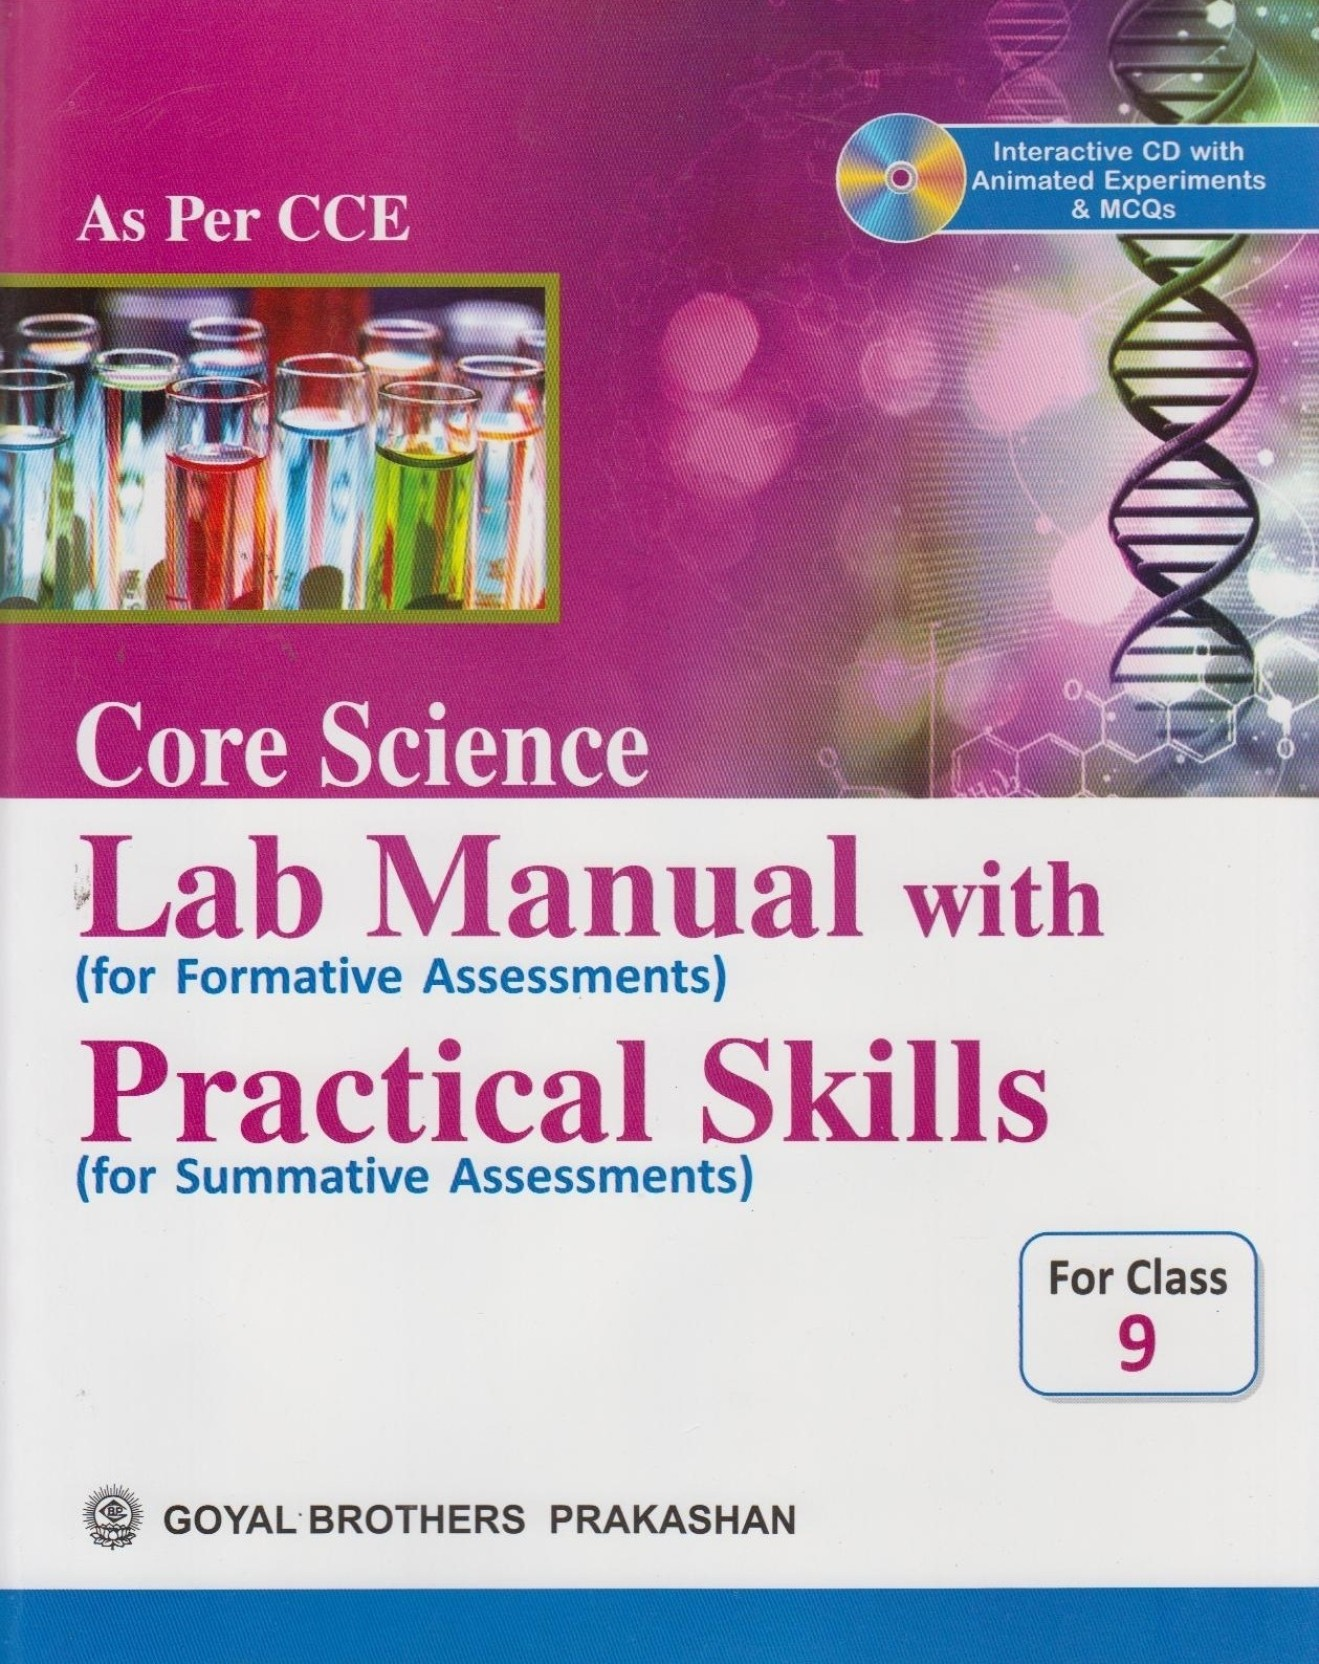 Core Science Lab Manual With Practical Skills For Class 9 (With CD). Share